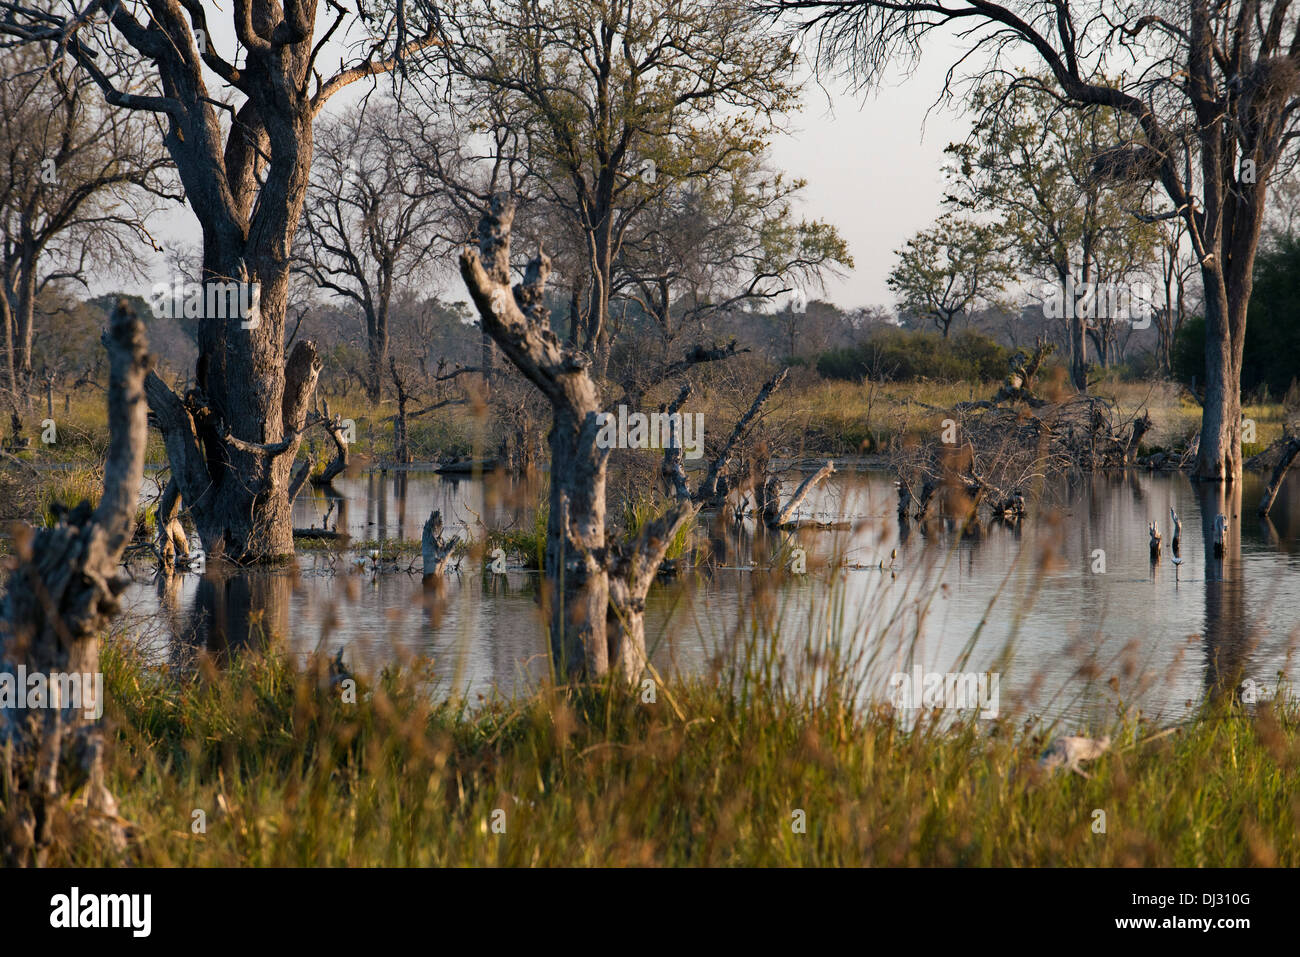 Landscape flooded at the time of llvuas in the Okavango Delta camp near Khwai River Lodge by Orient Express in Botswana. - Stock Image